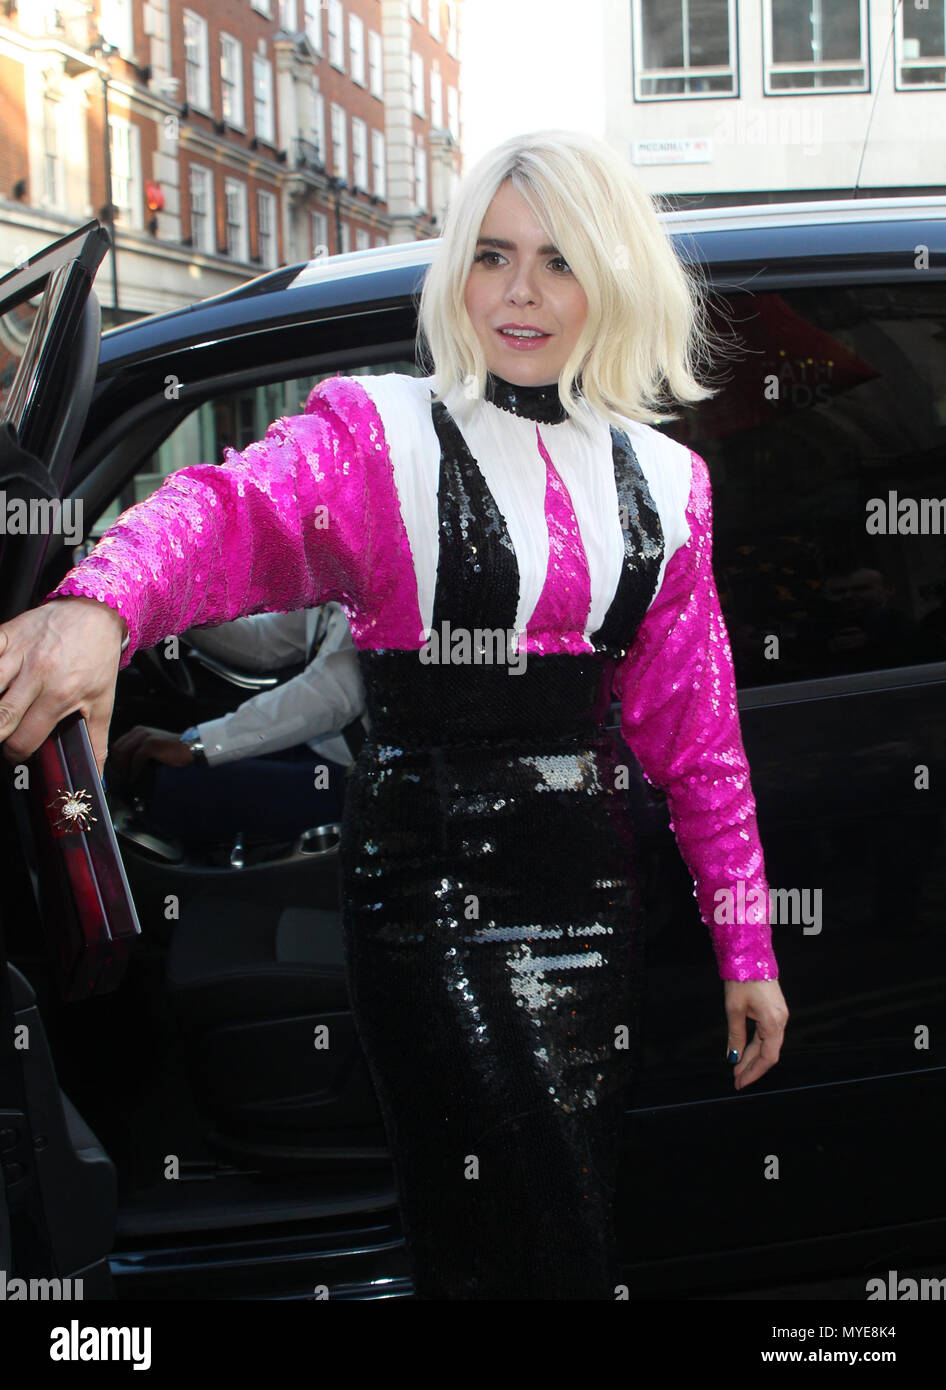 London, UK, 6th June, 2018. Paloma Faith attends the Royal Academy of Arts Summer Exhibition Preview Party Credit: RM Press/Alamy Live News Stock Photo